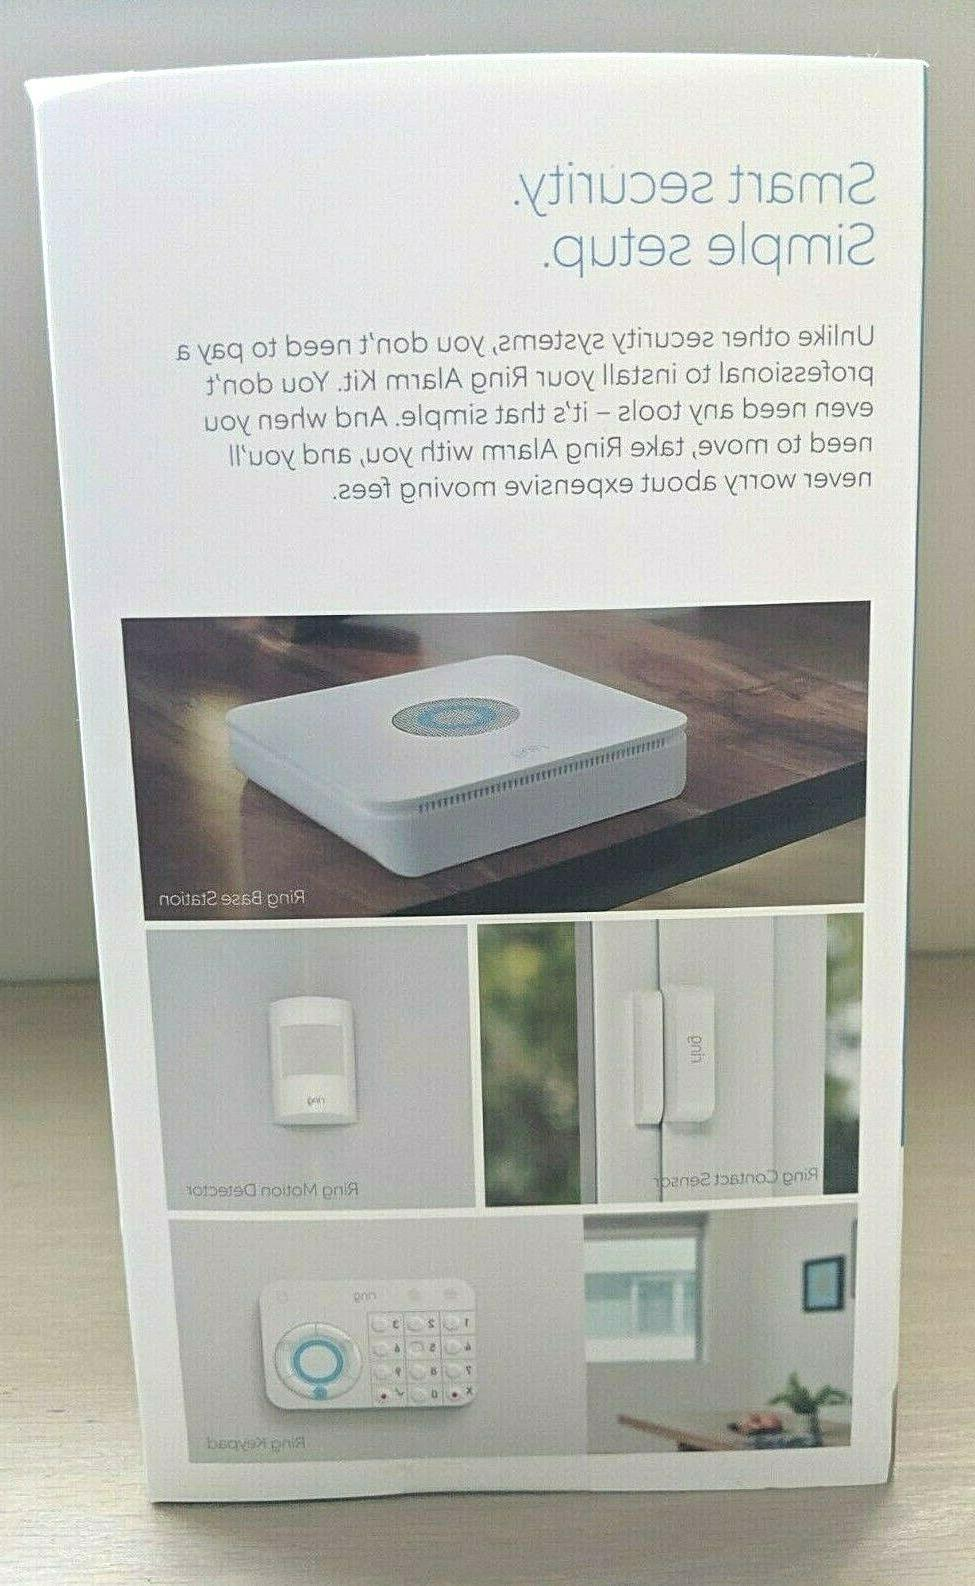 NEW Ring Alarm Security Kit Home - 10 Piece Smart